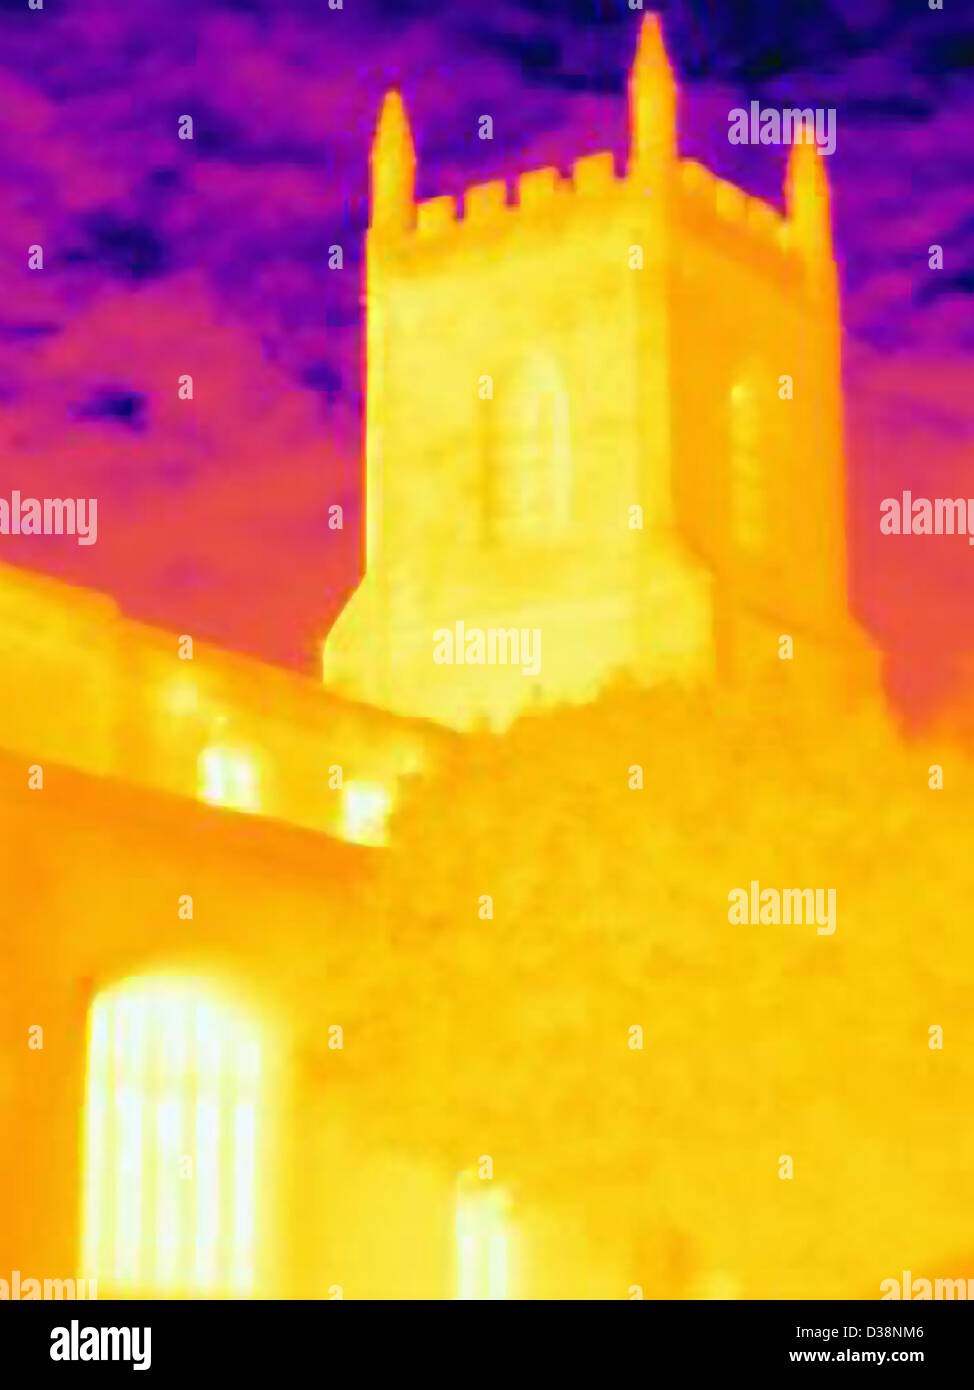 Thermal image of church building - Stock Image